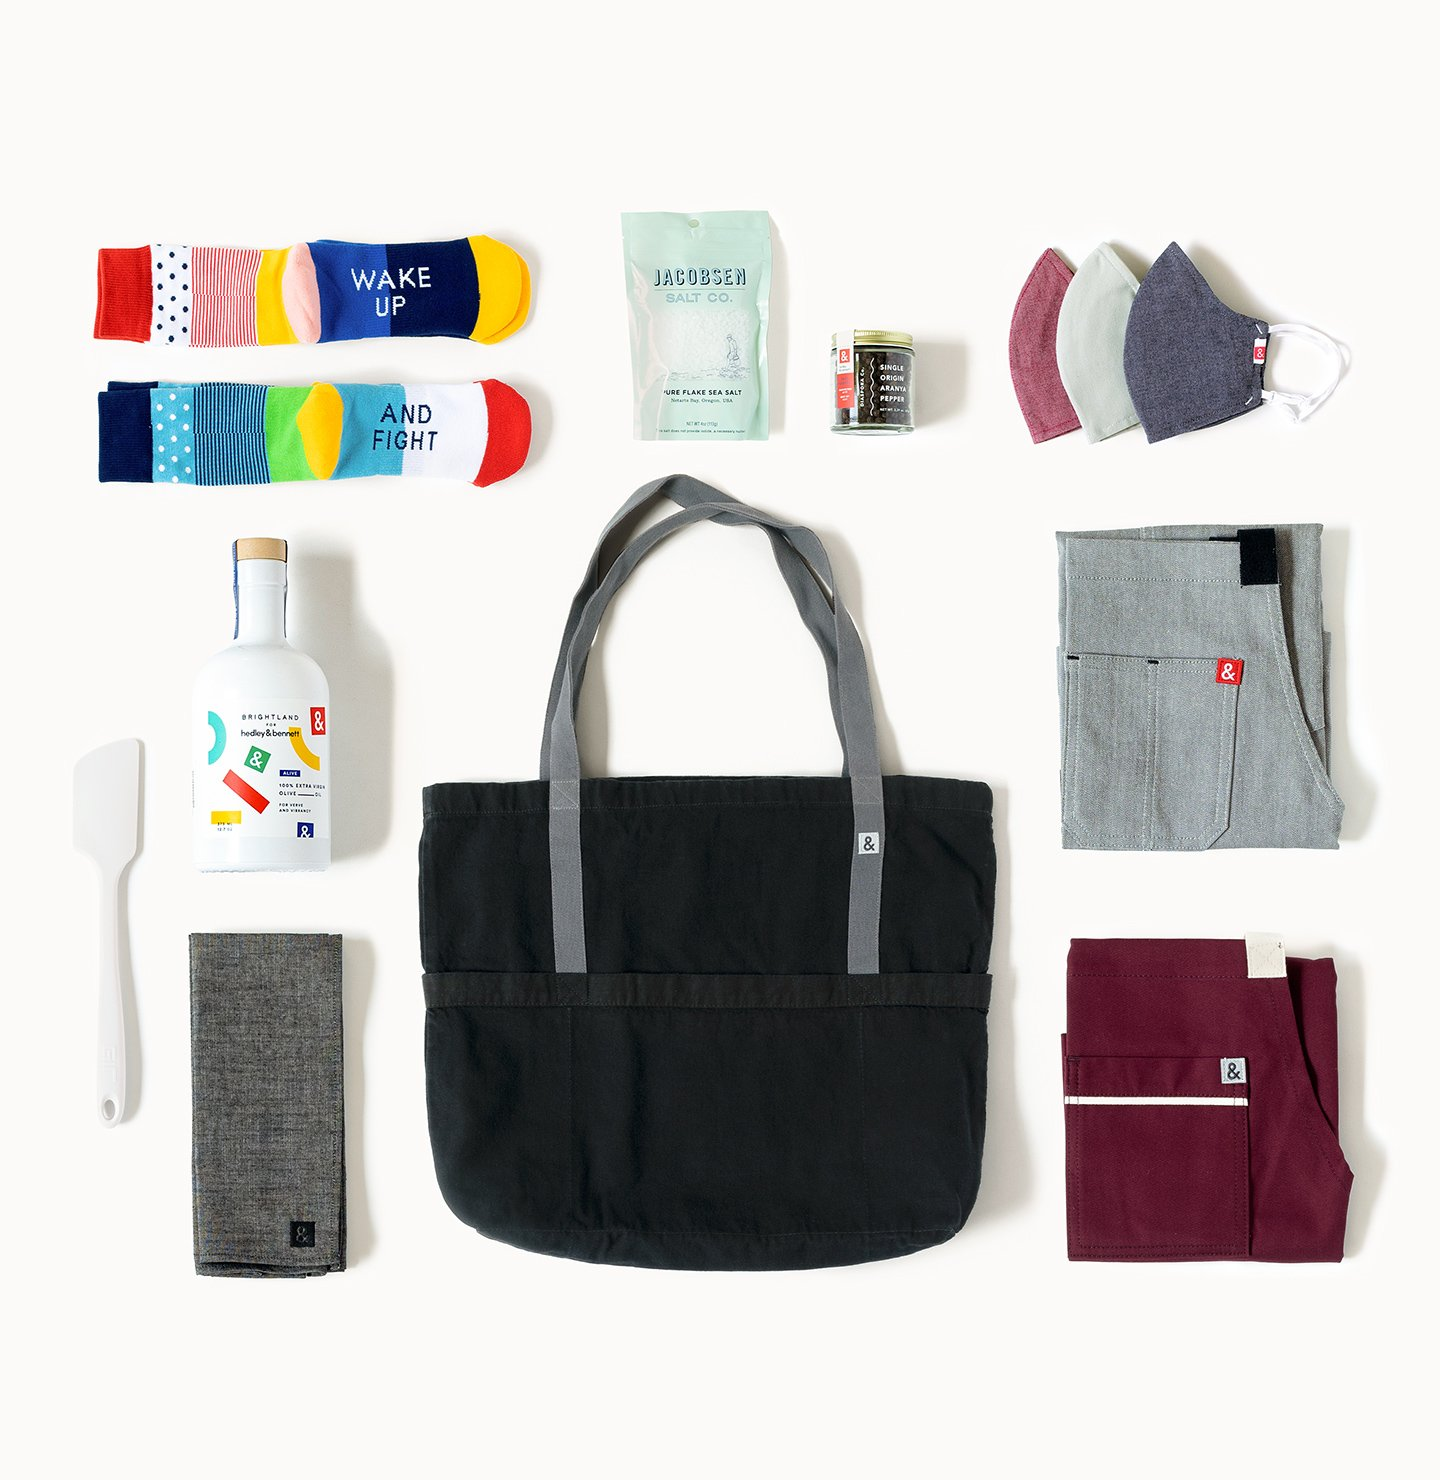 The Cook Together Kit